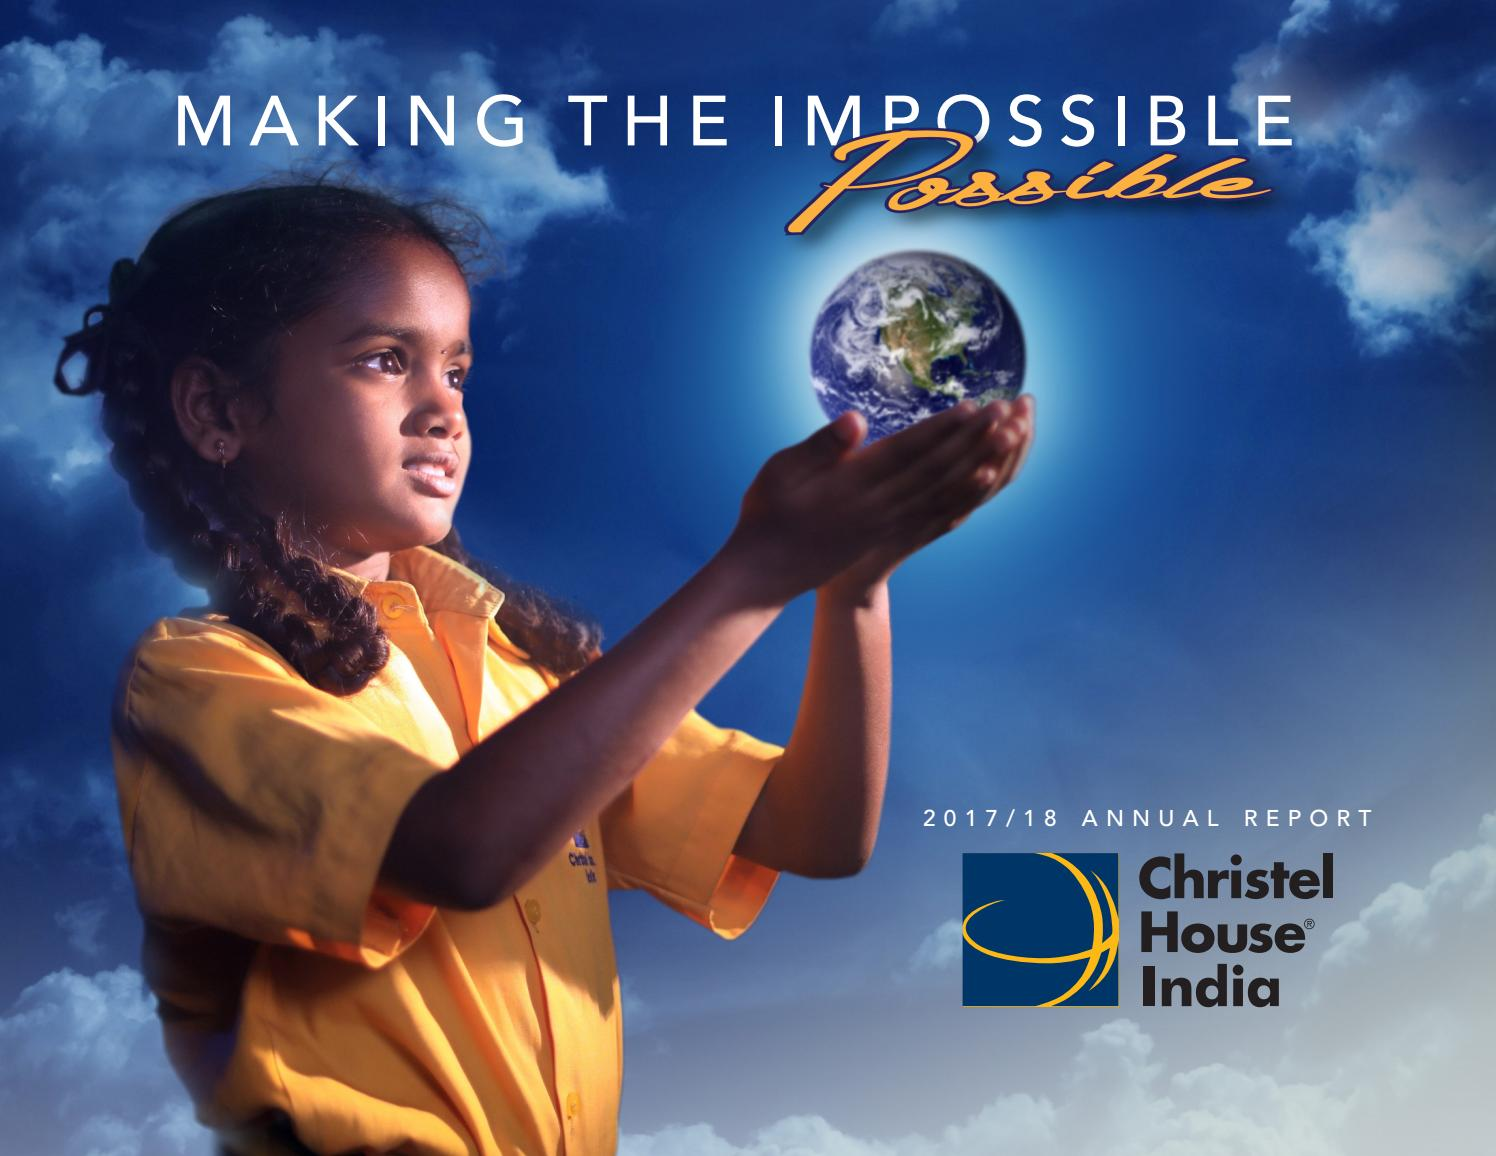 Christel House India 2018-2019 Annual Report by Christel